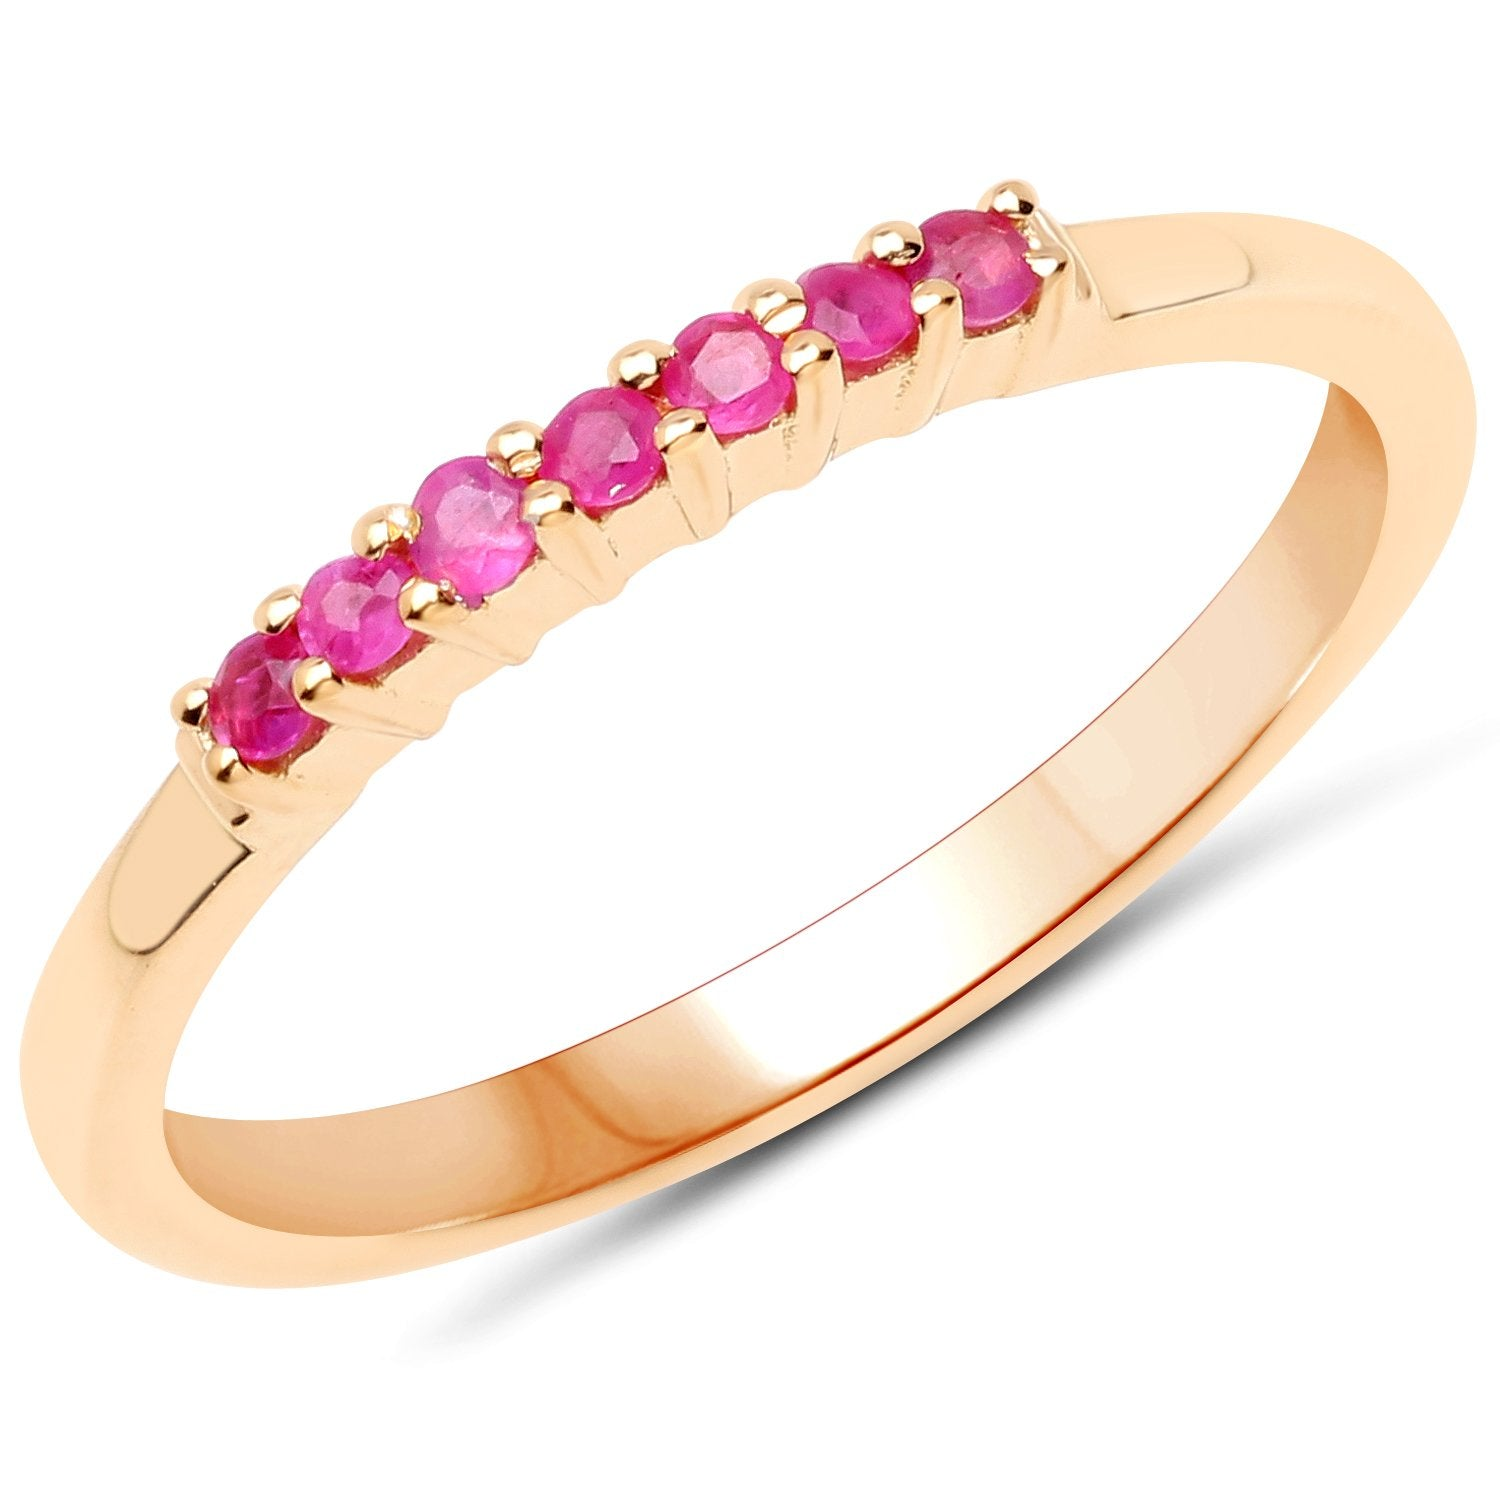 LoveHuang 0.12 Carats Genuine Ruby Stacking Ring Solid .925 Sterling Silver With 18KT Yellow Gold Plating